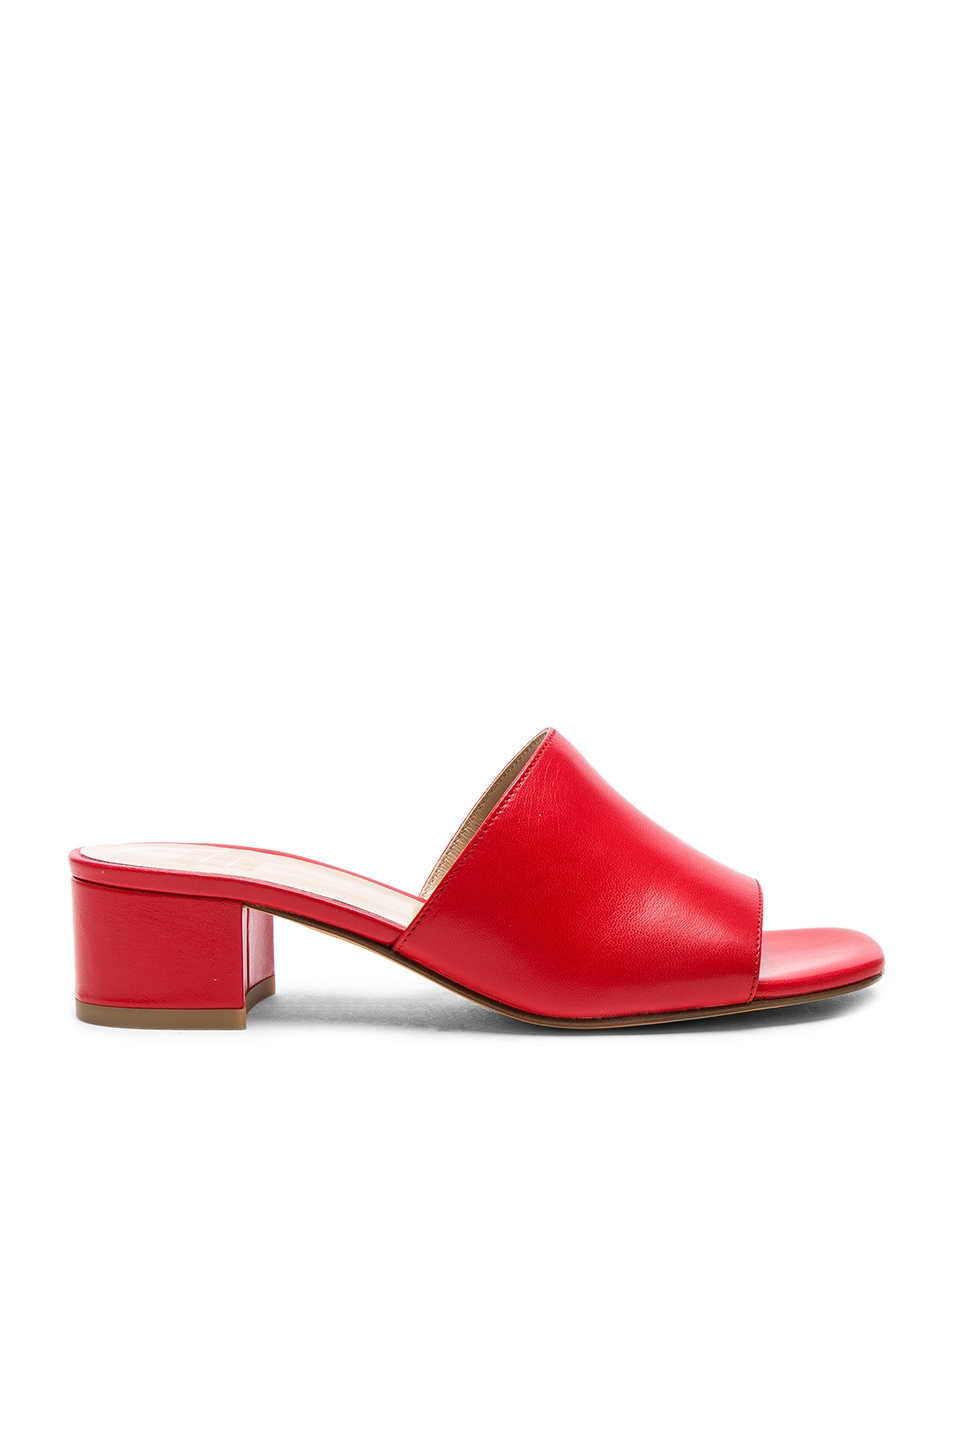 Image 1 of Maryam Nassir Zadeh Leather Sophie Slides in Red Calf